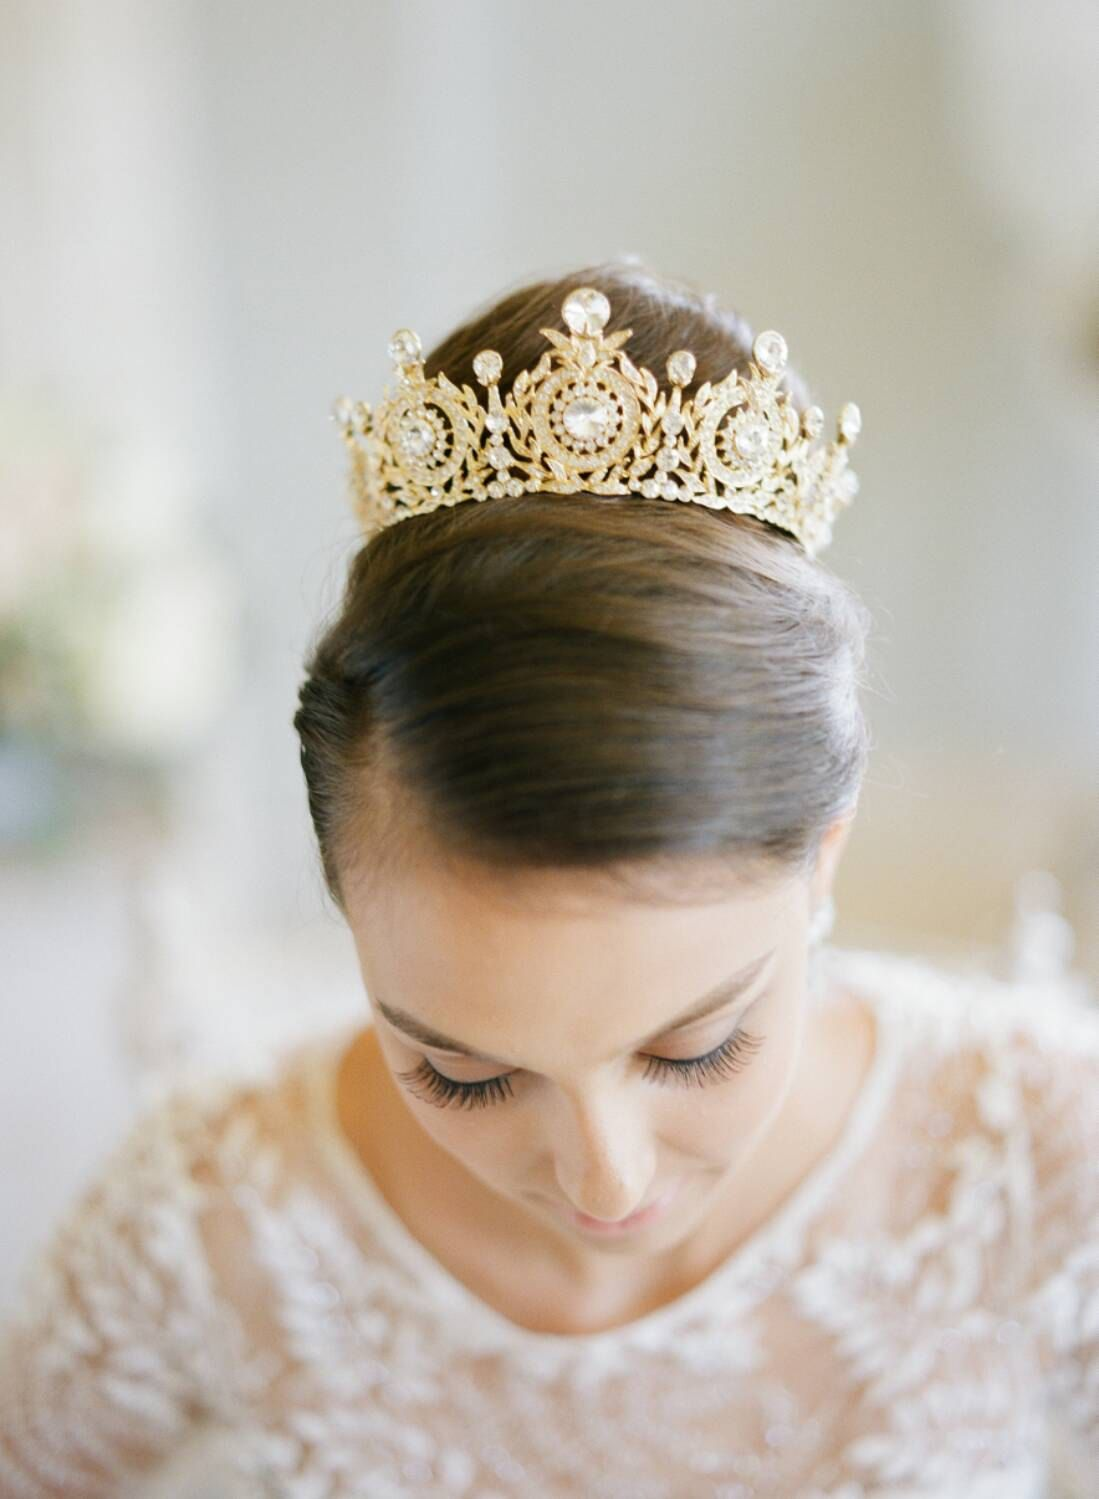 Crowning Glory The Return Of Bridal Tiara